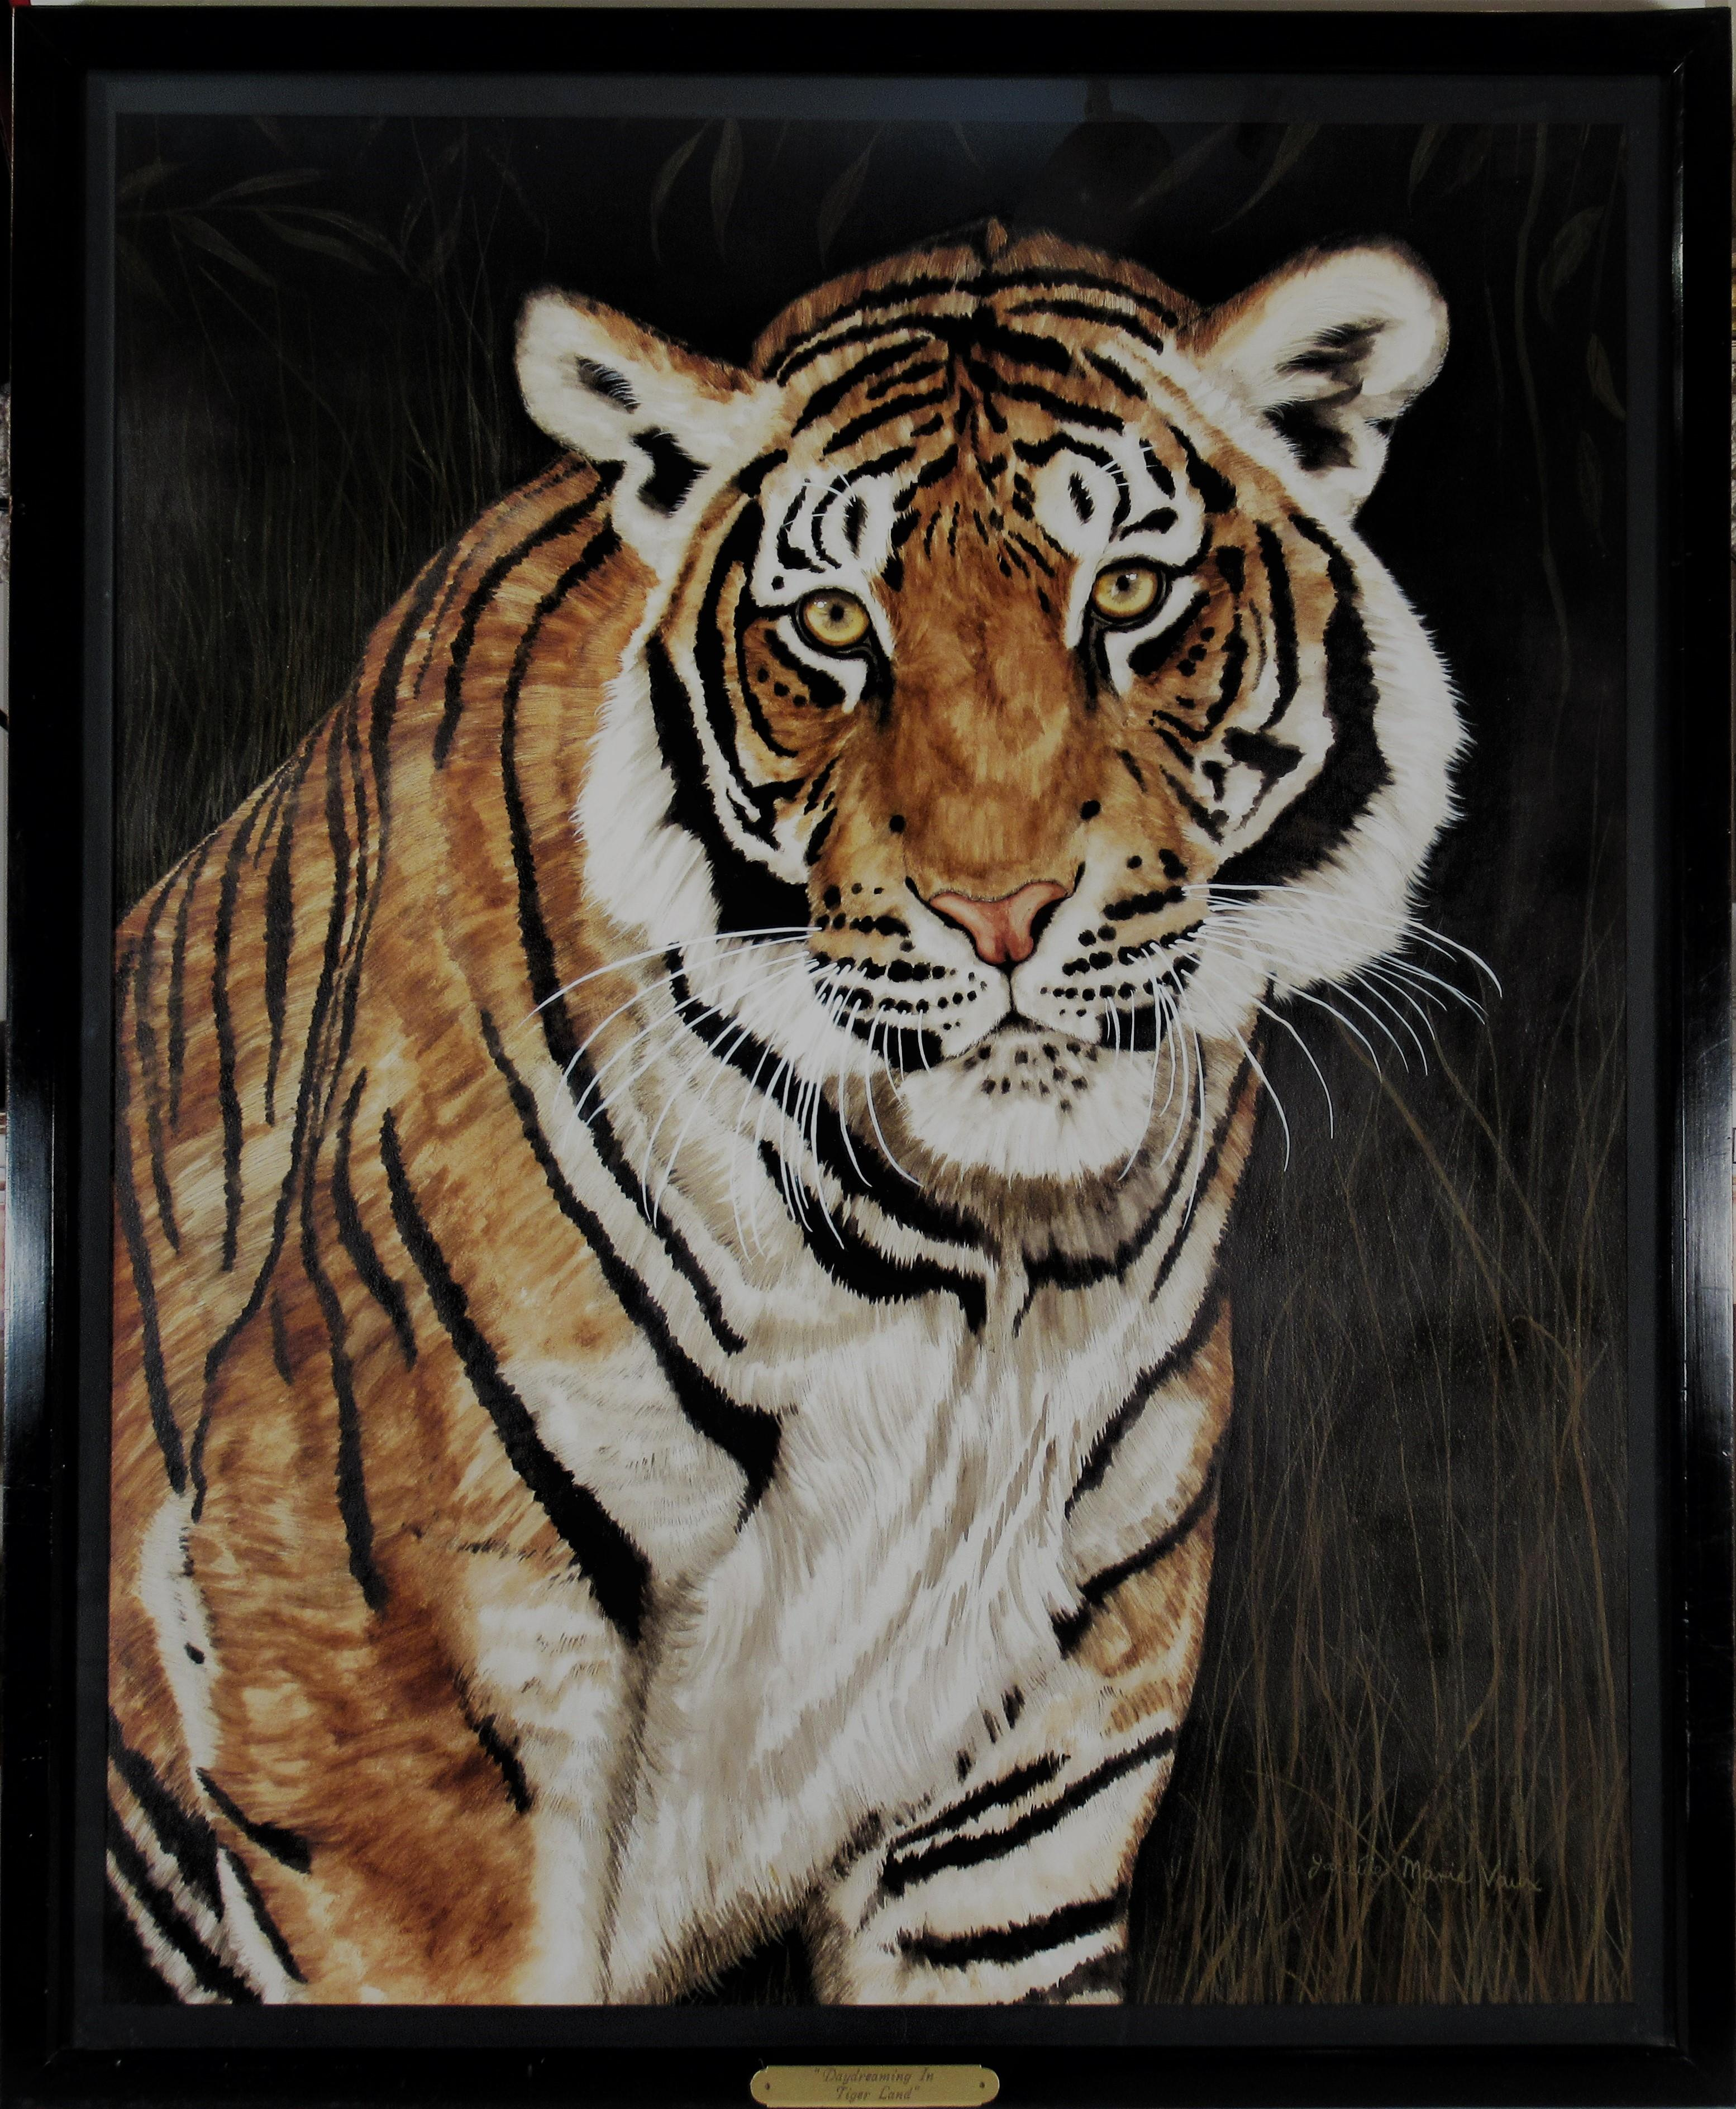 Daydreaming in Tiger Land, large watercolor and gouache